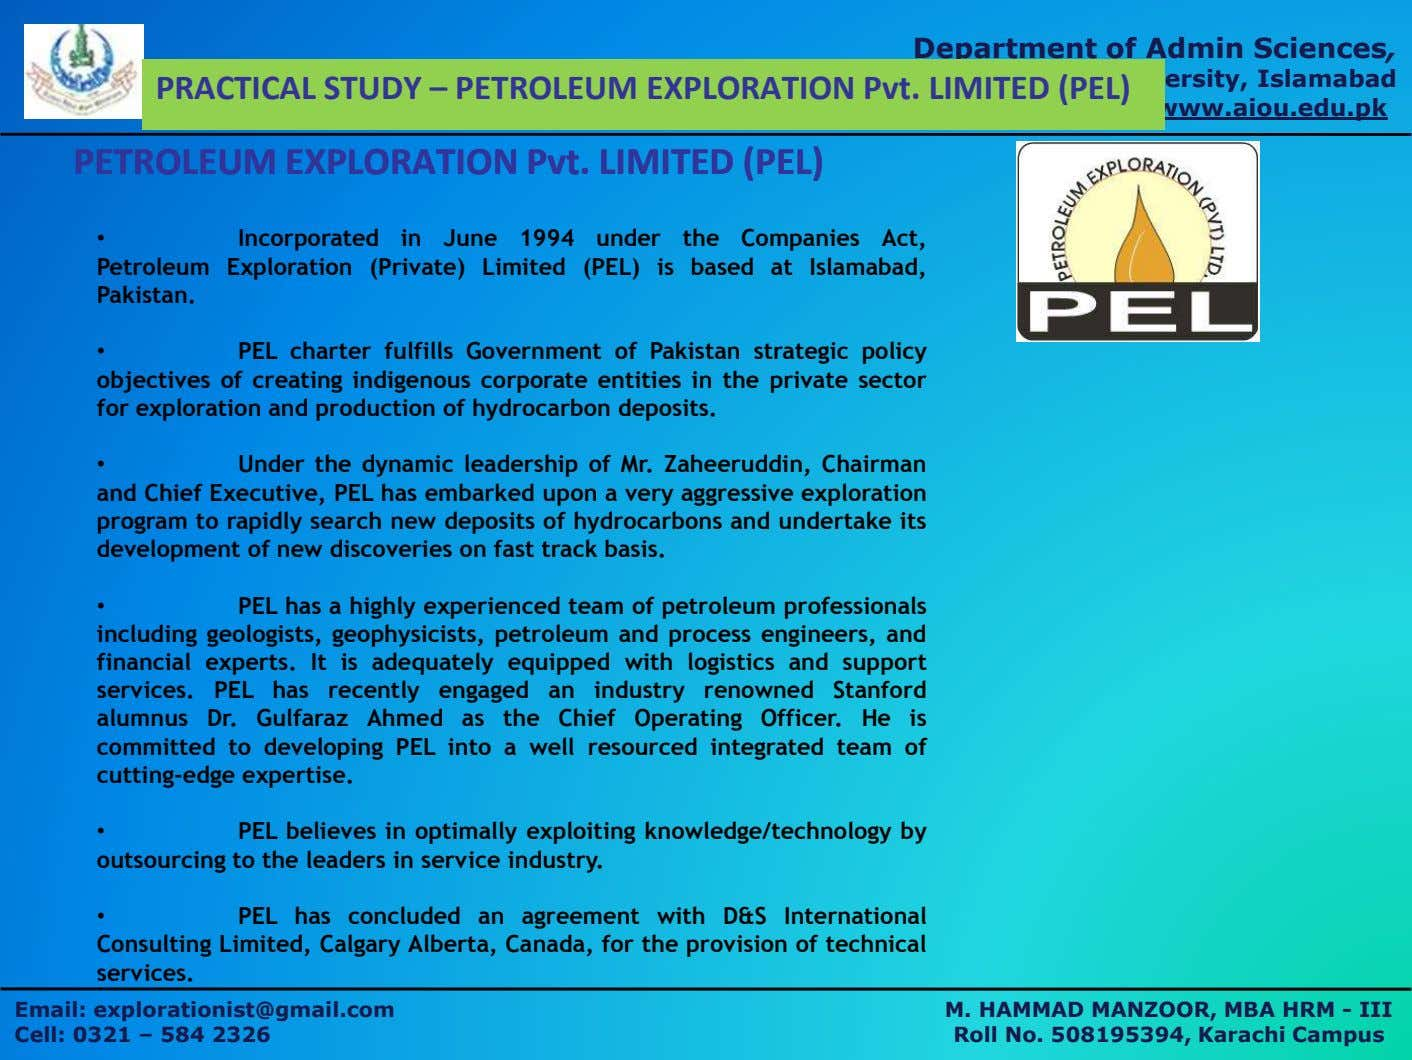 Department of Admin Sciences, Allama Iqbal Open University, Islamabad PRACTICAL STUDY – PETROLEUM EXPLORATION Pvt.